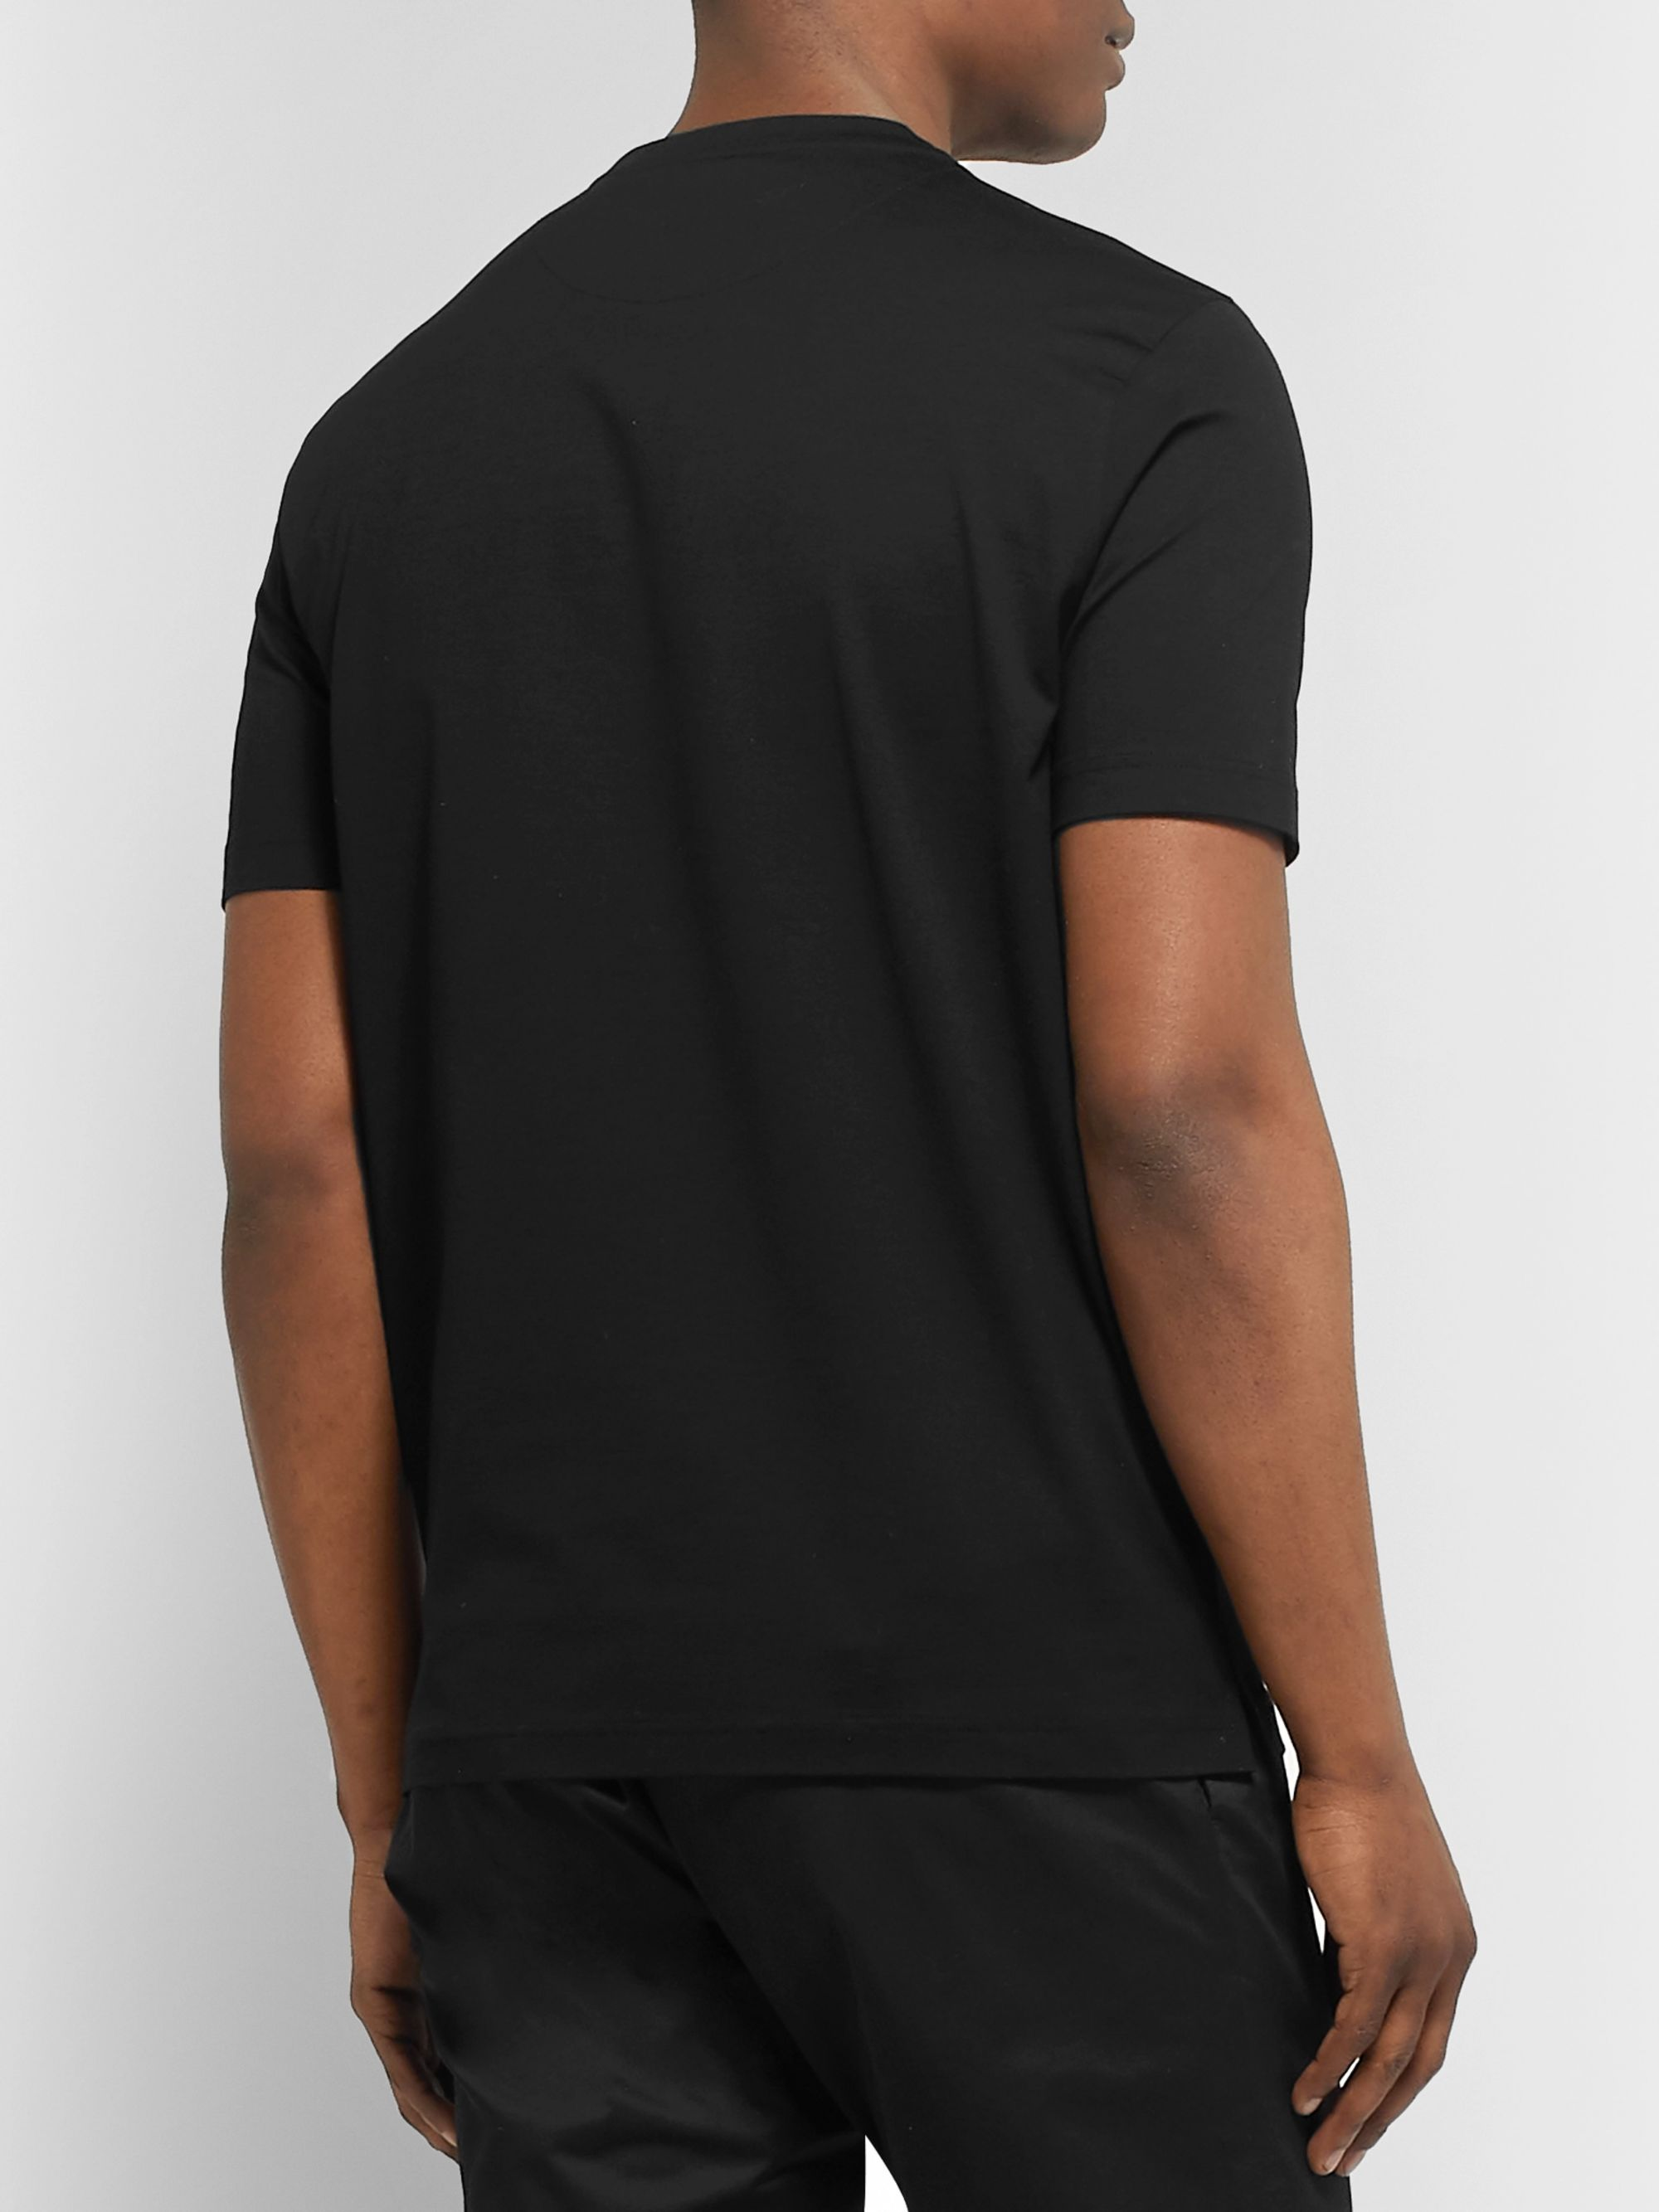 Prada Slim-Fit Nylon-Trimmed Stretch-Cotton Jersey T-Shirt